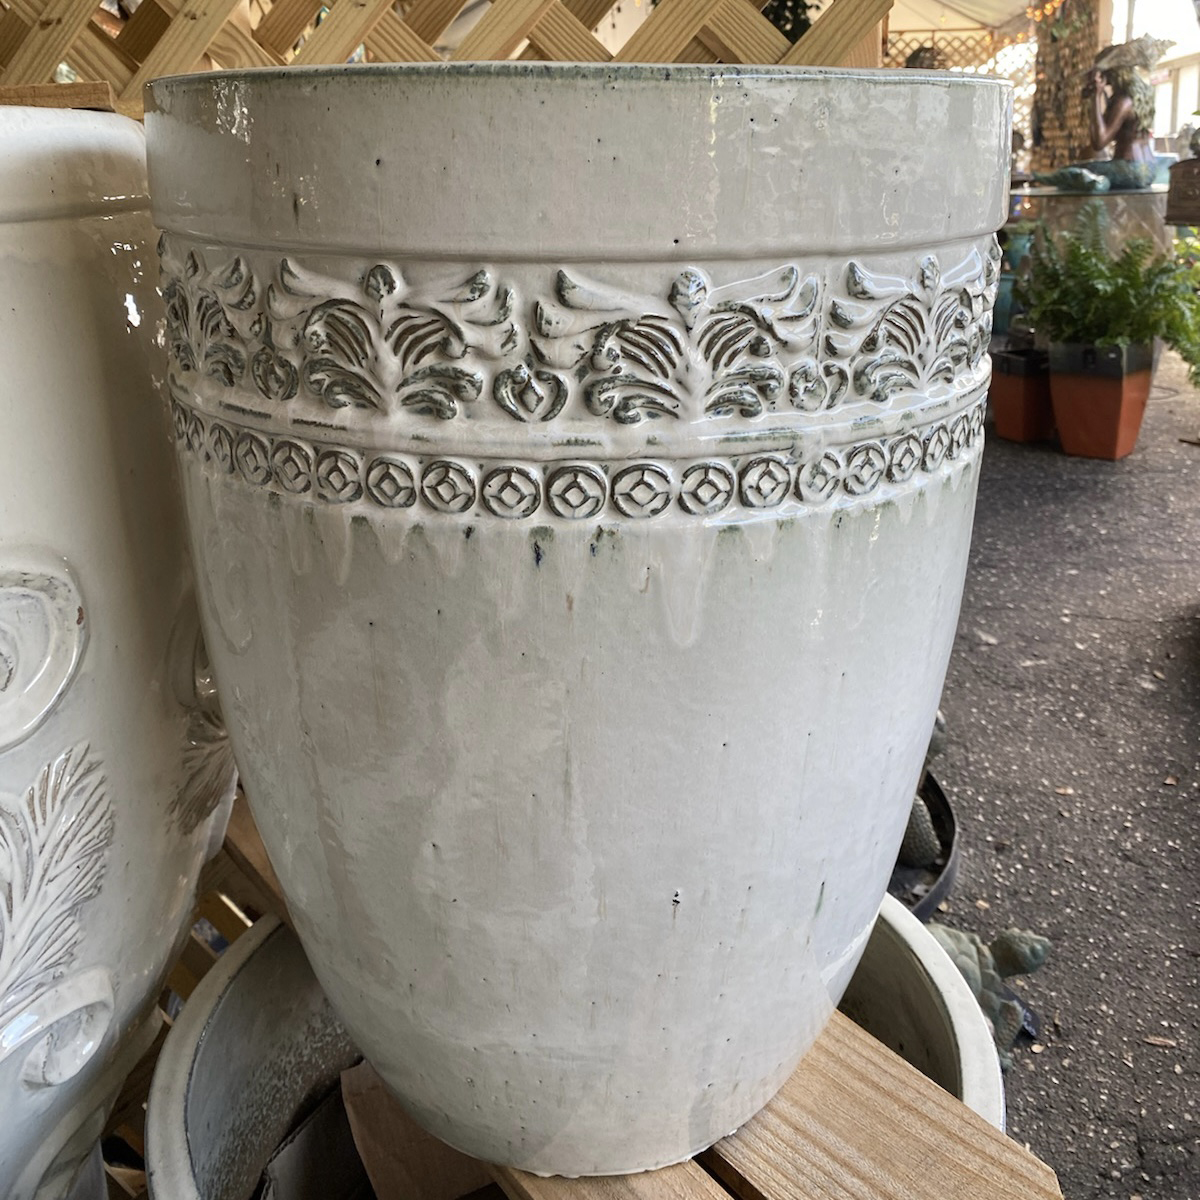 Ethans Courtyard and Patio Bonita Springs | Large White Plant Pots | Bonita Springs | Water Fountains, Wall Fountains, Mailboxes, and more | Pottery Store